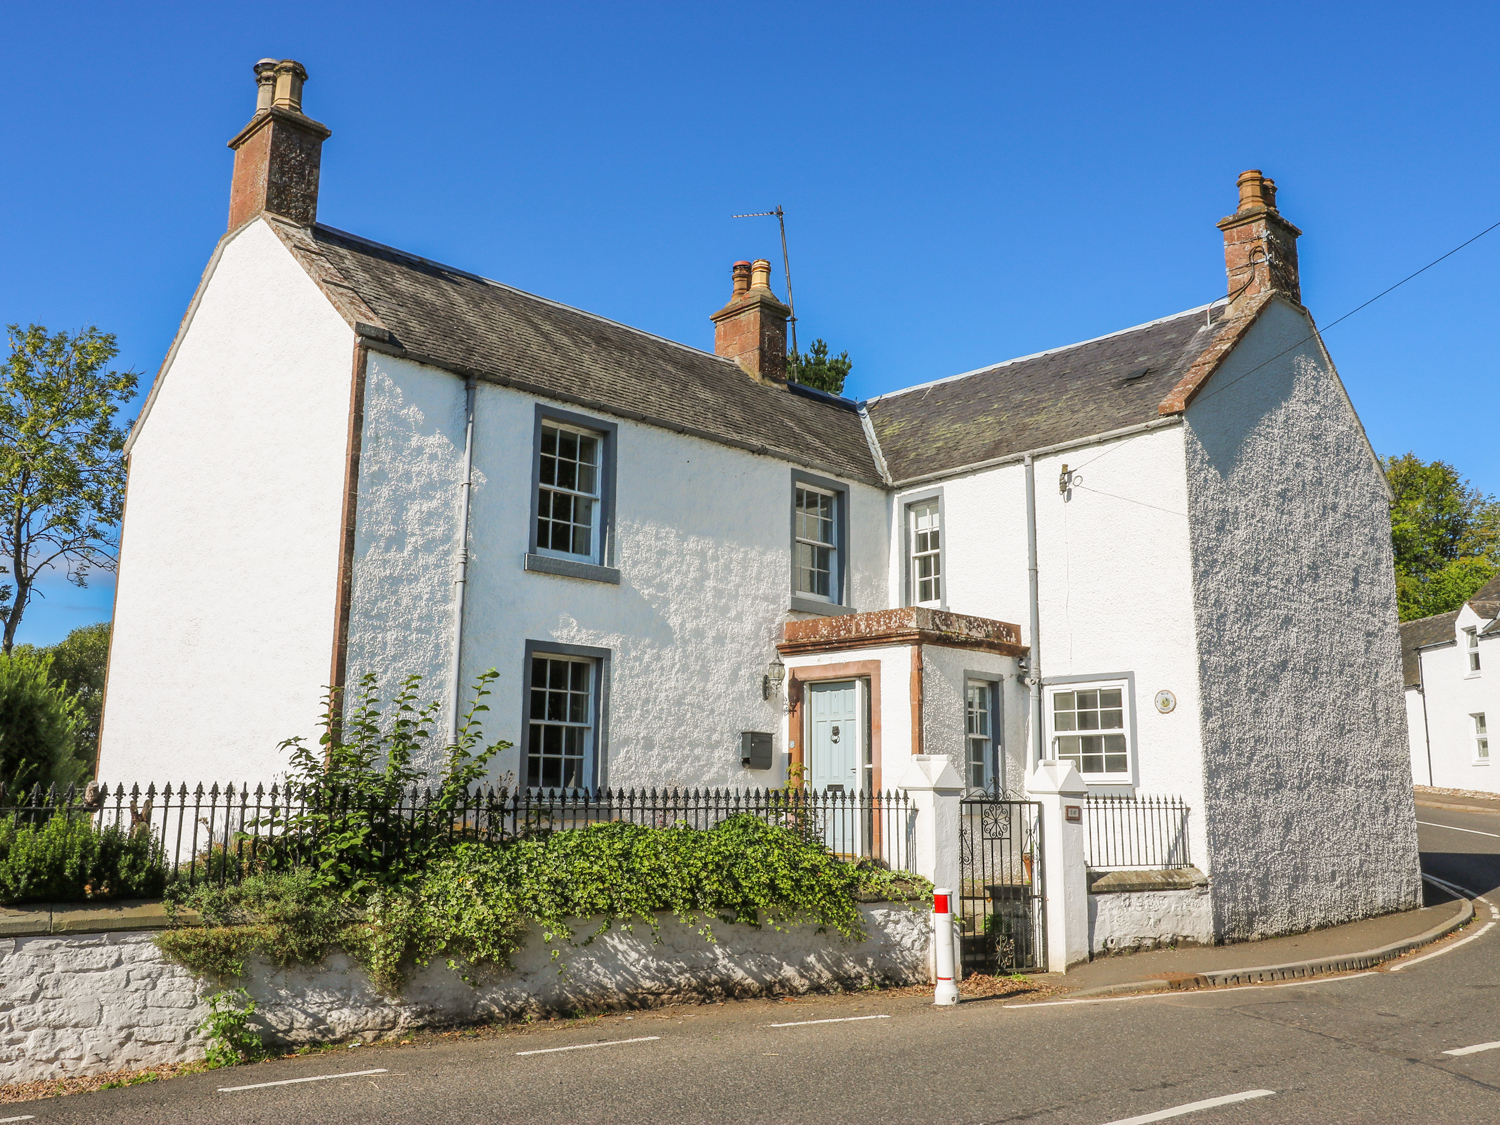 4 bedroom Cottage for rent in Kirriemuir